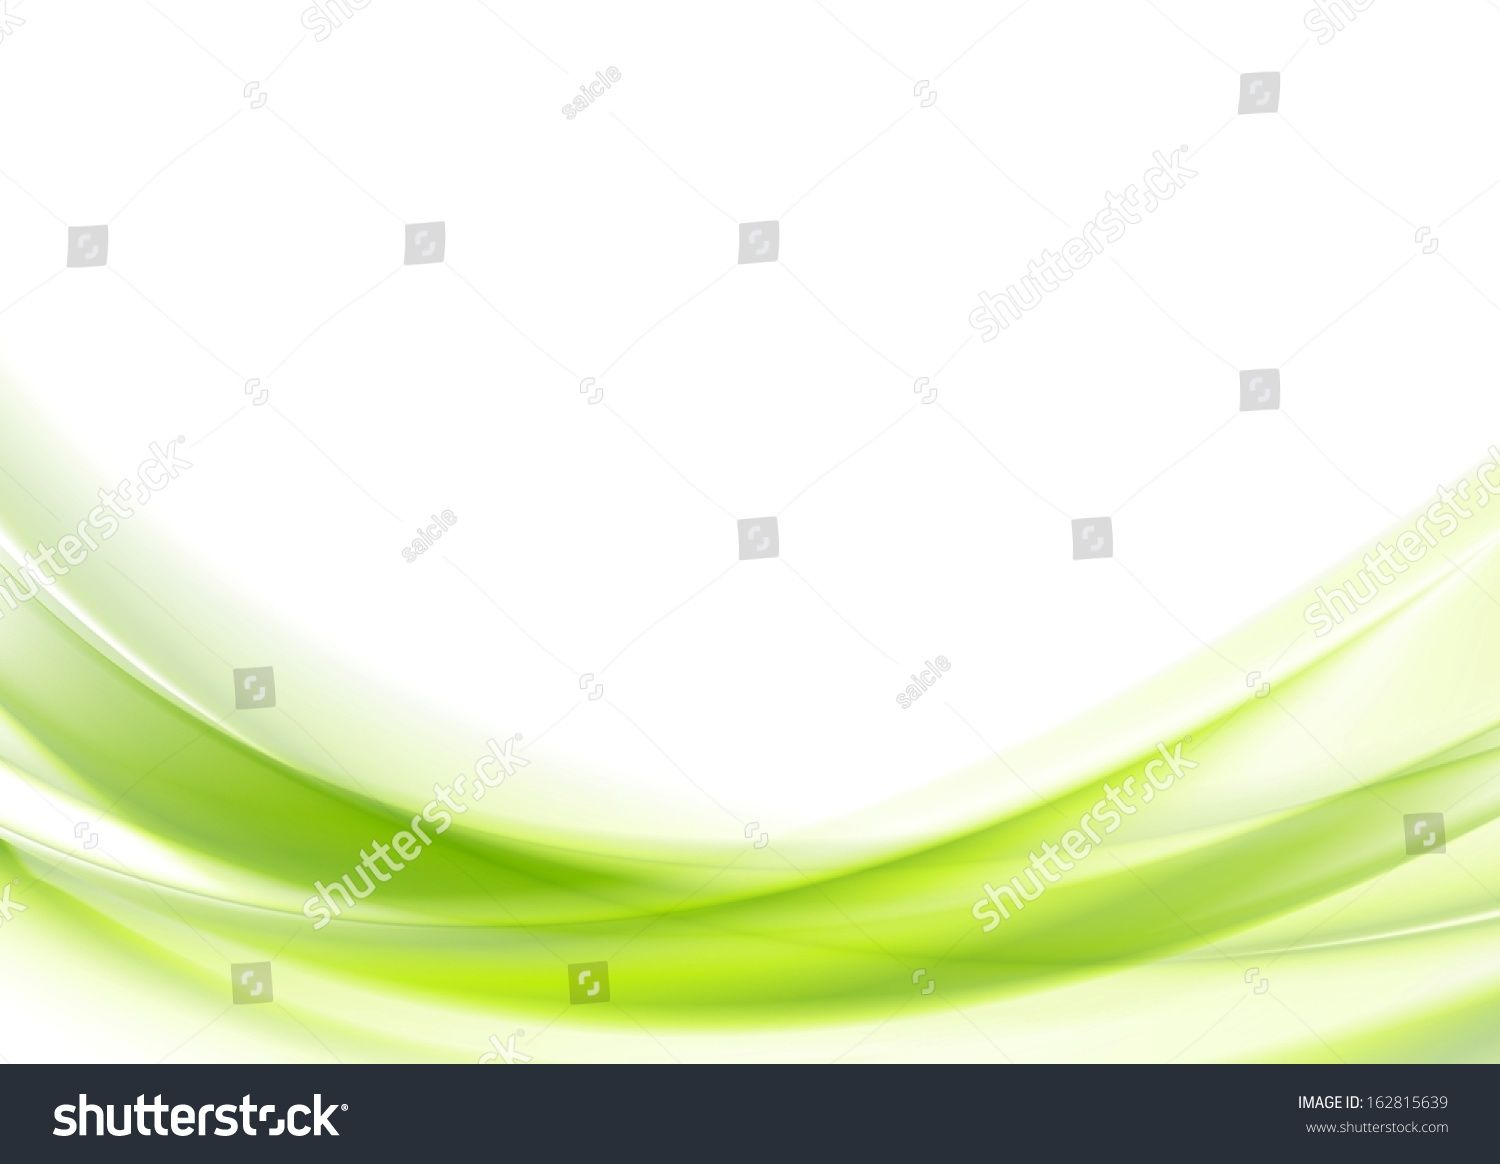 Bright Green Vector Waves Abstract Background Background